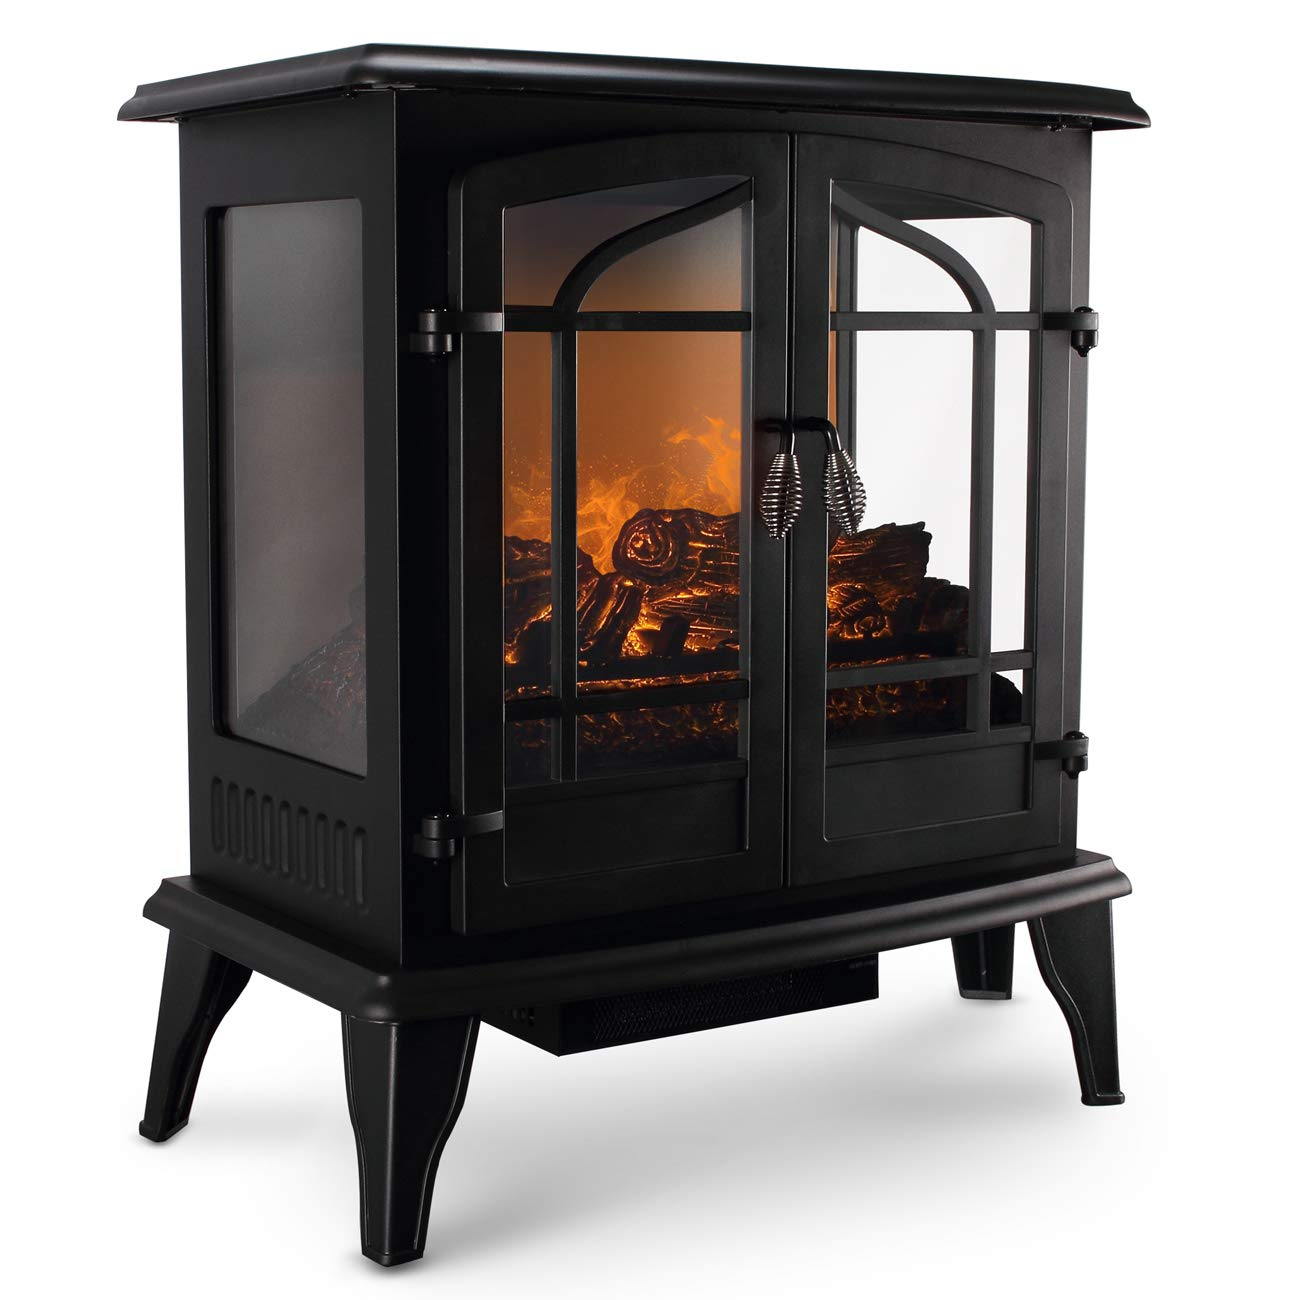 Vintage Electric Fireplace 27 Inch Freestanding